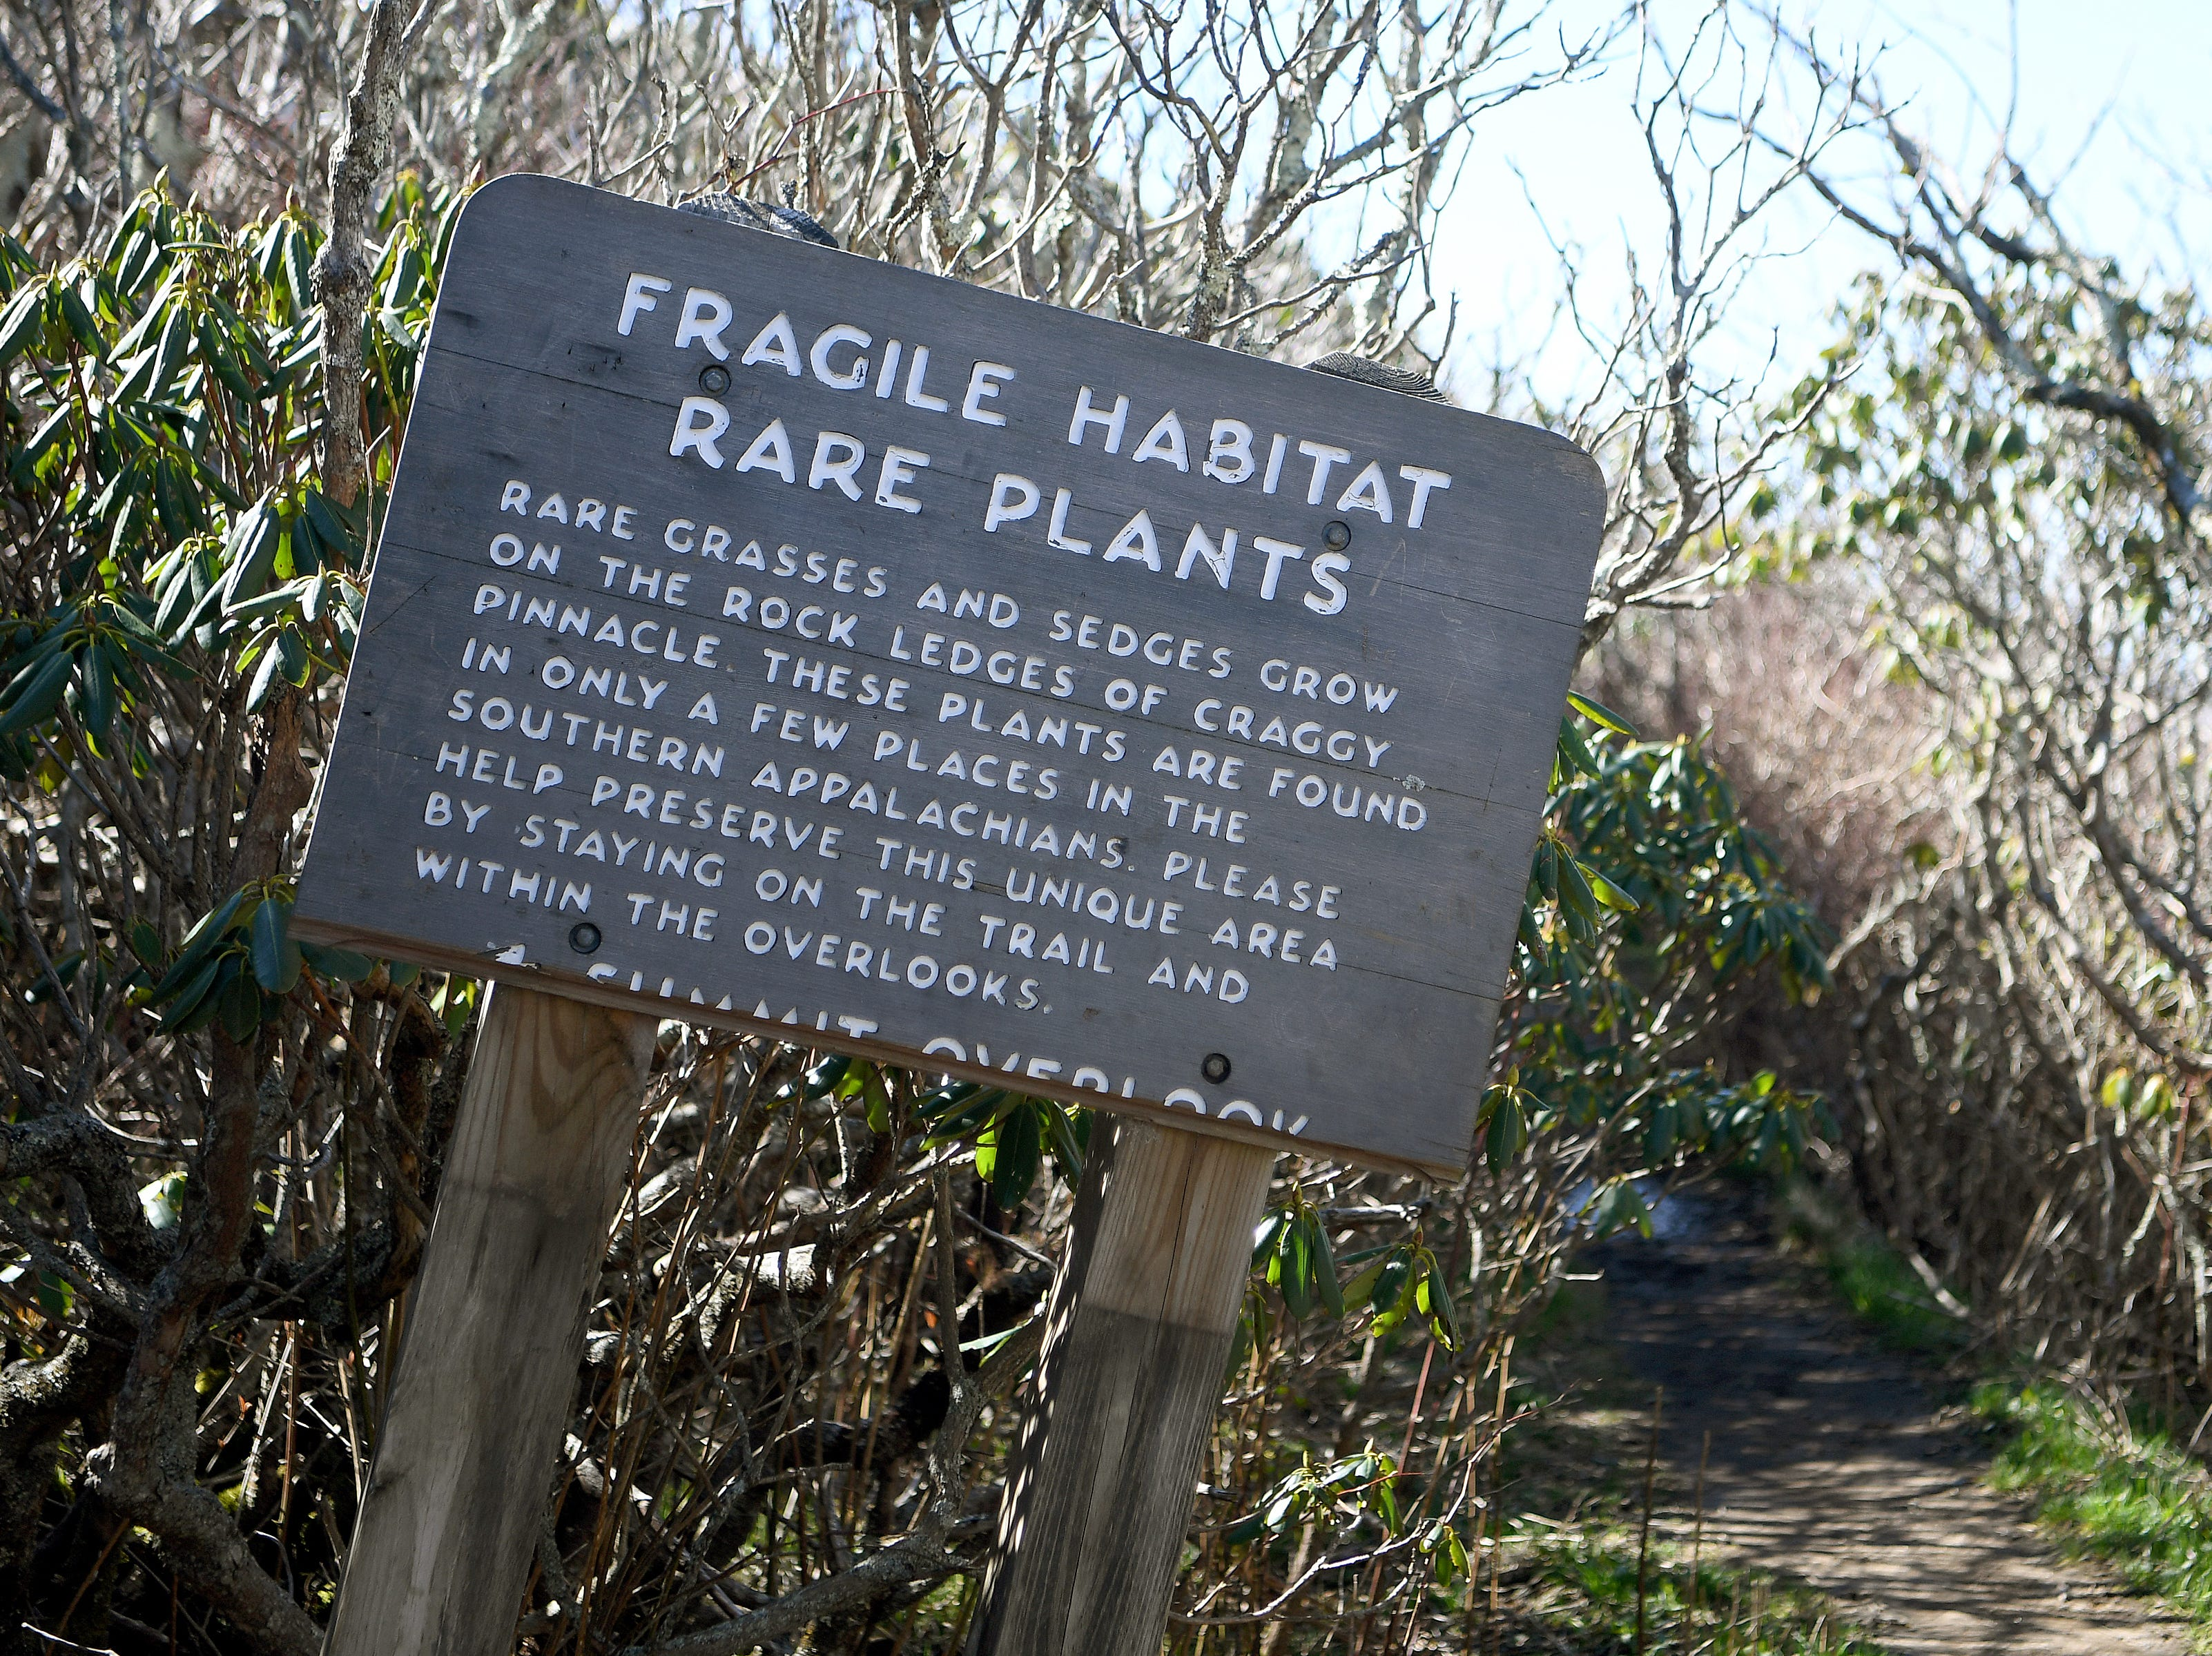 A sign on the Craggy Pinnacle trail on the Blue Ridge Parkway warns visitors of fragile plant life and to stay on the trails to preserve it.